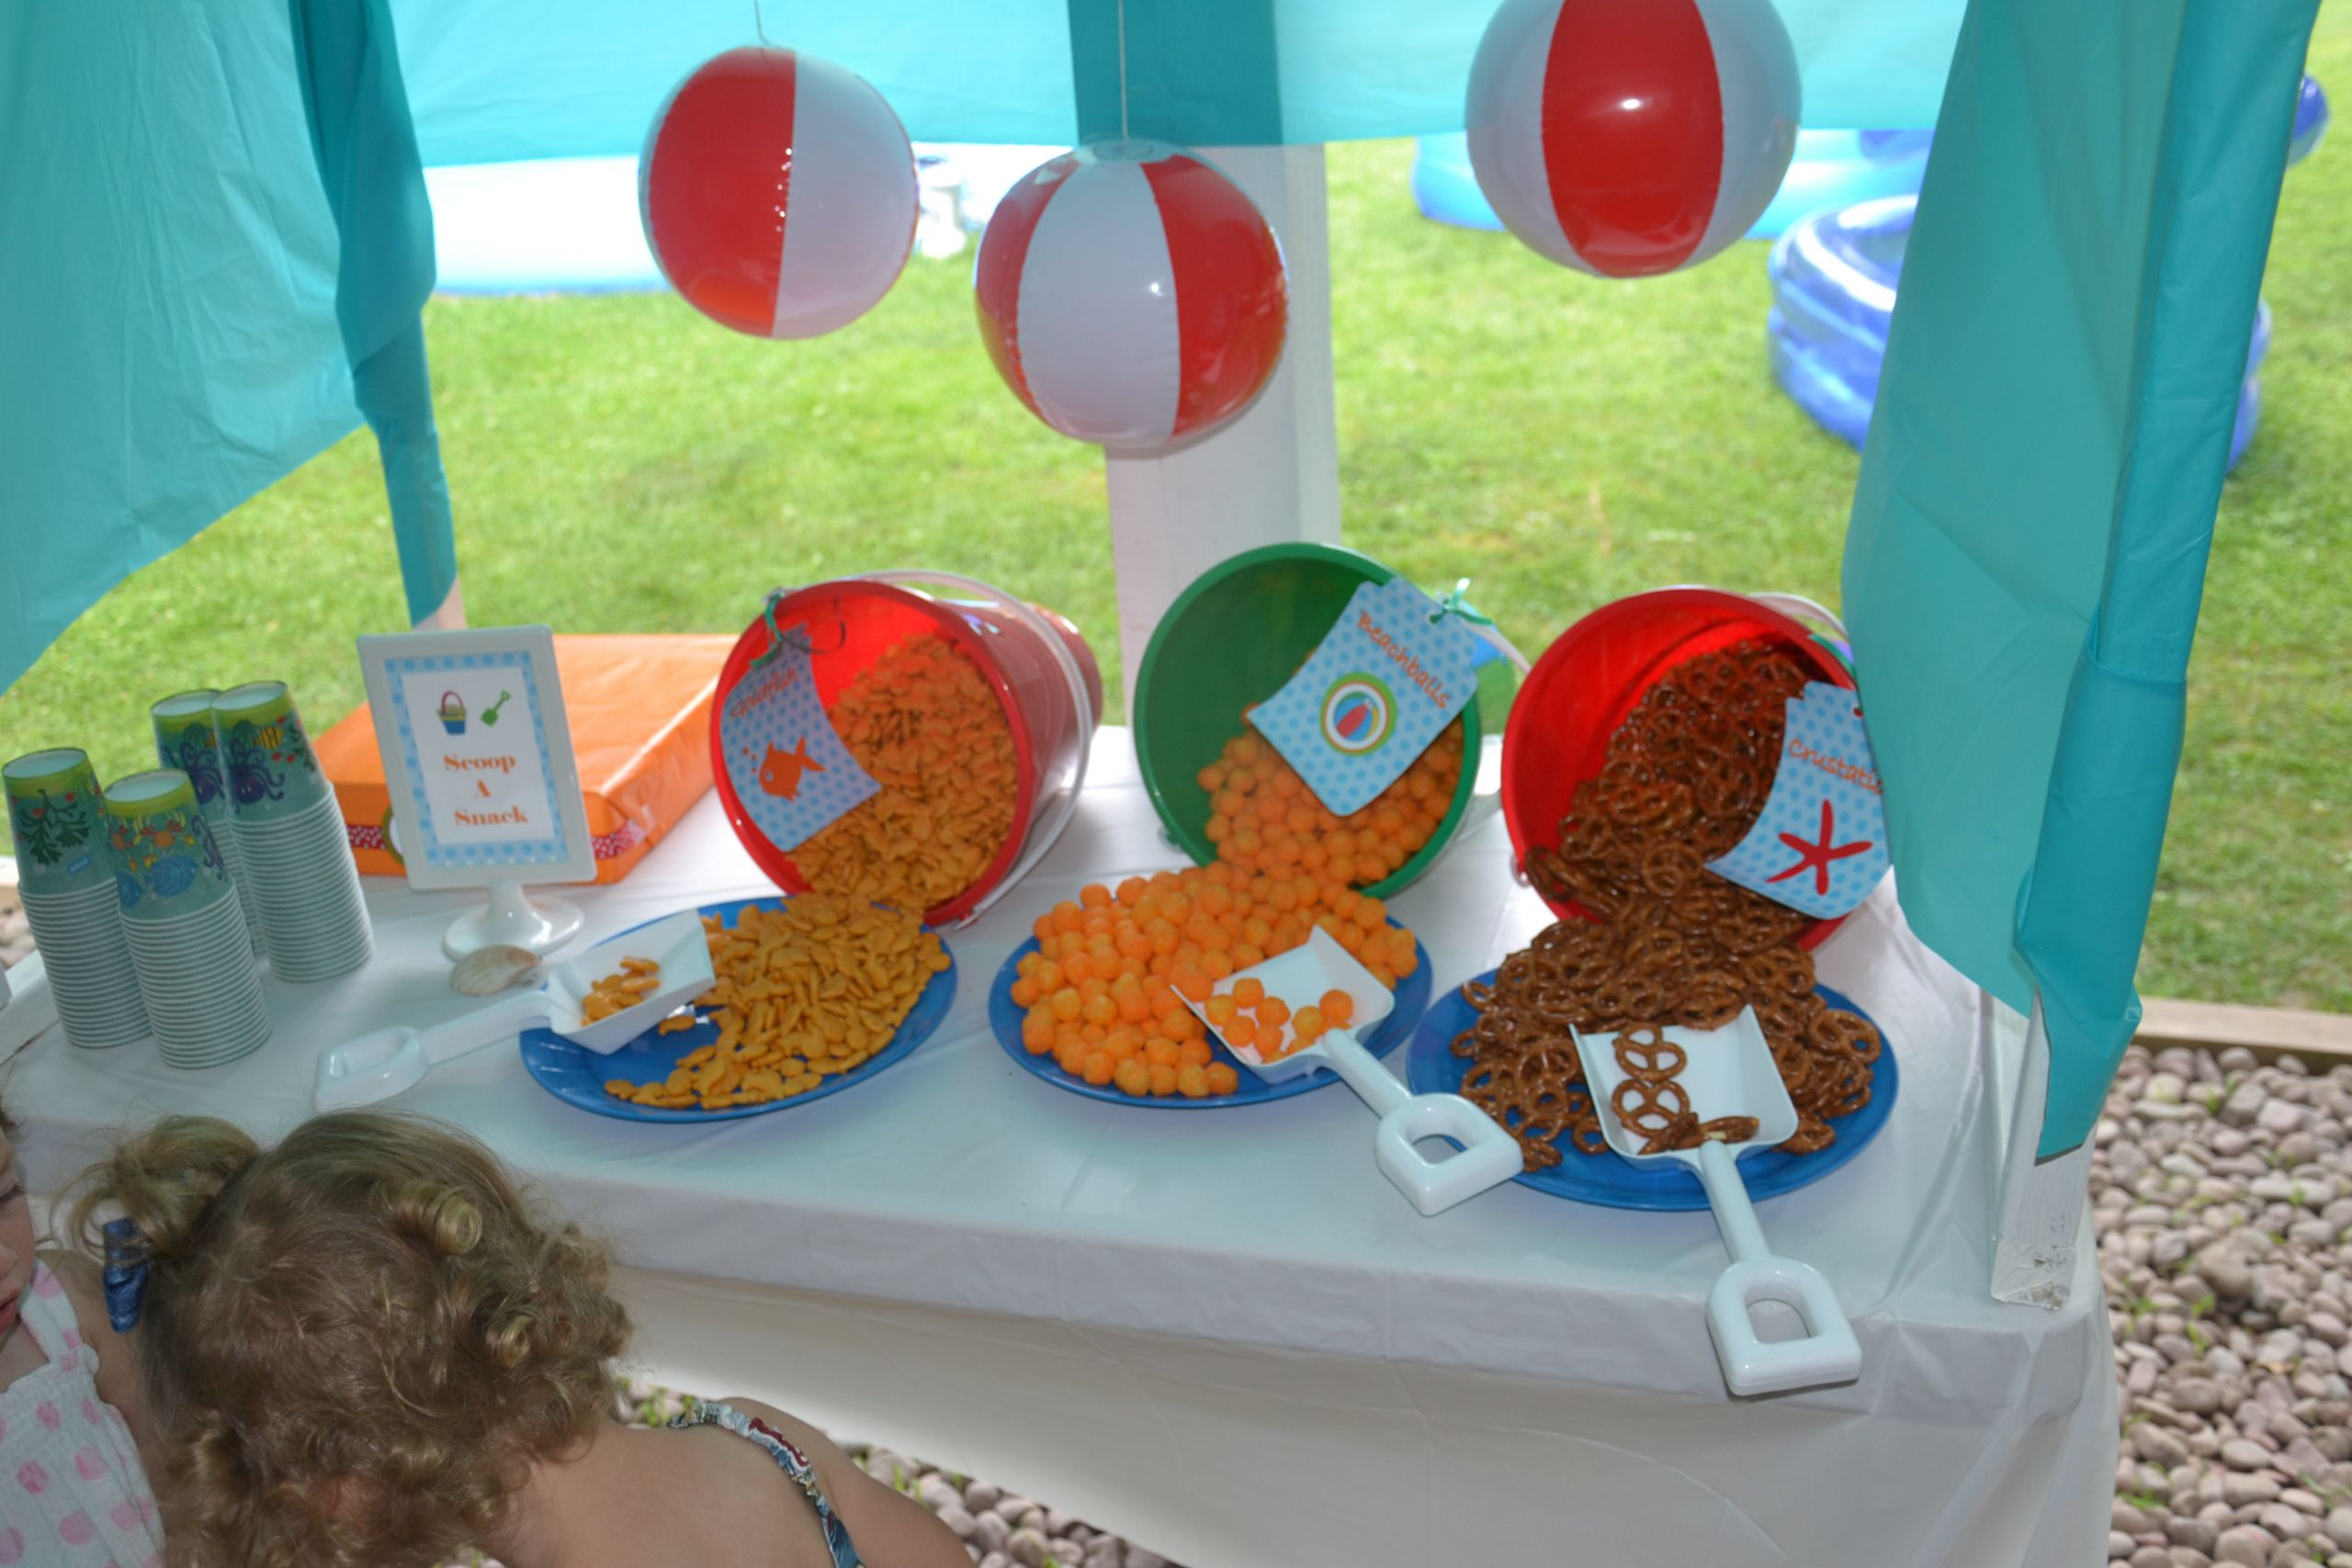 Ideas For A Beach Party  Party on a Bud  Ideas for Serving Summer Snacks